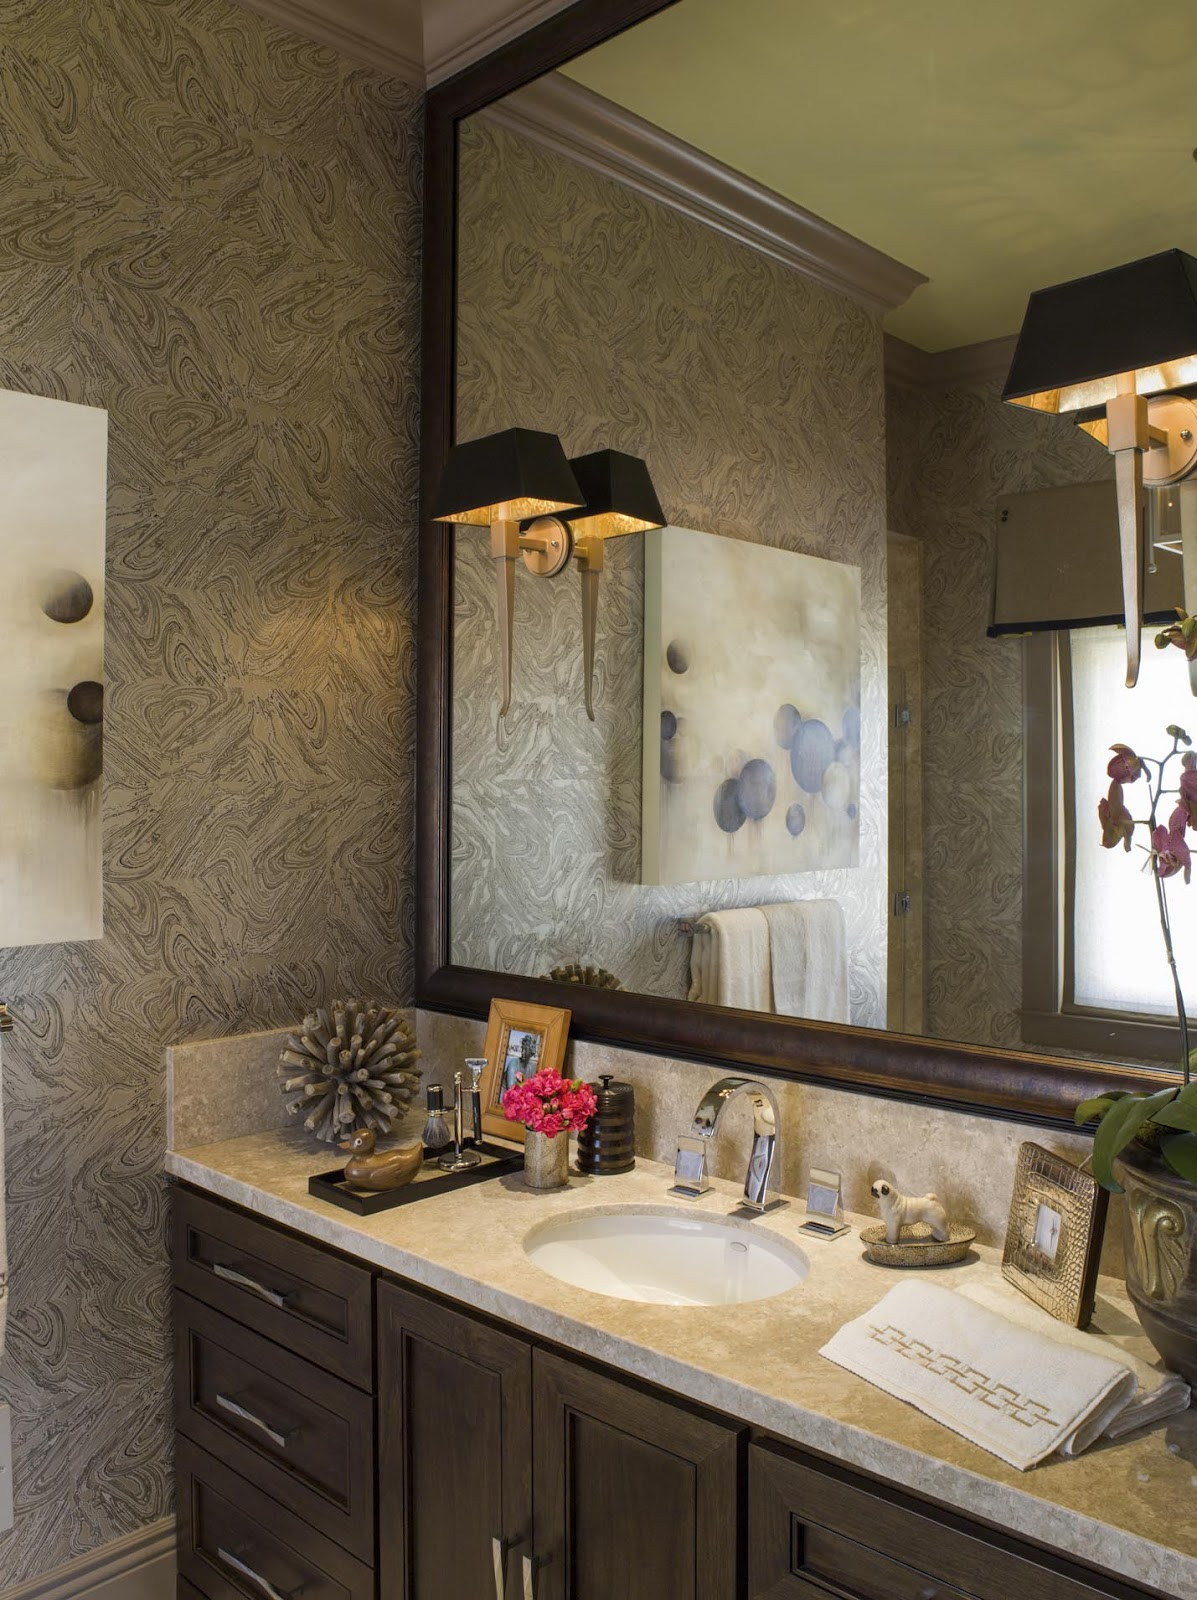 Bathroom Wallpaper Ideas Bathroom Wallpaper Designs